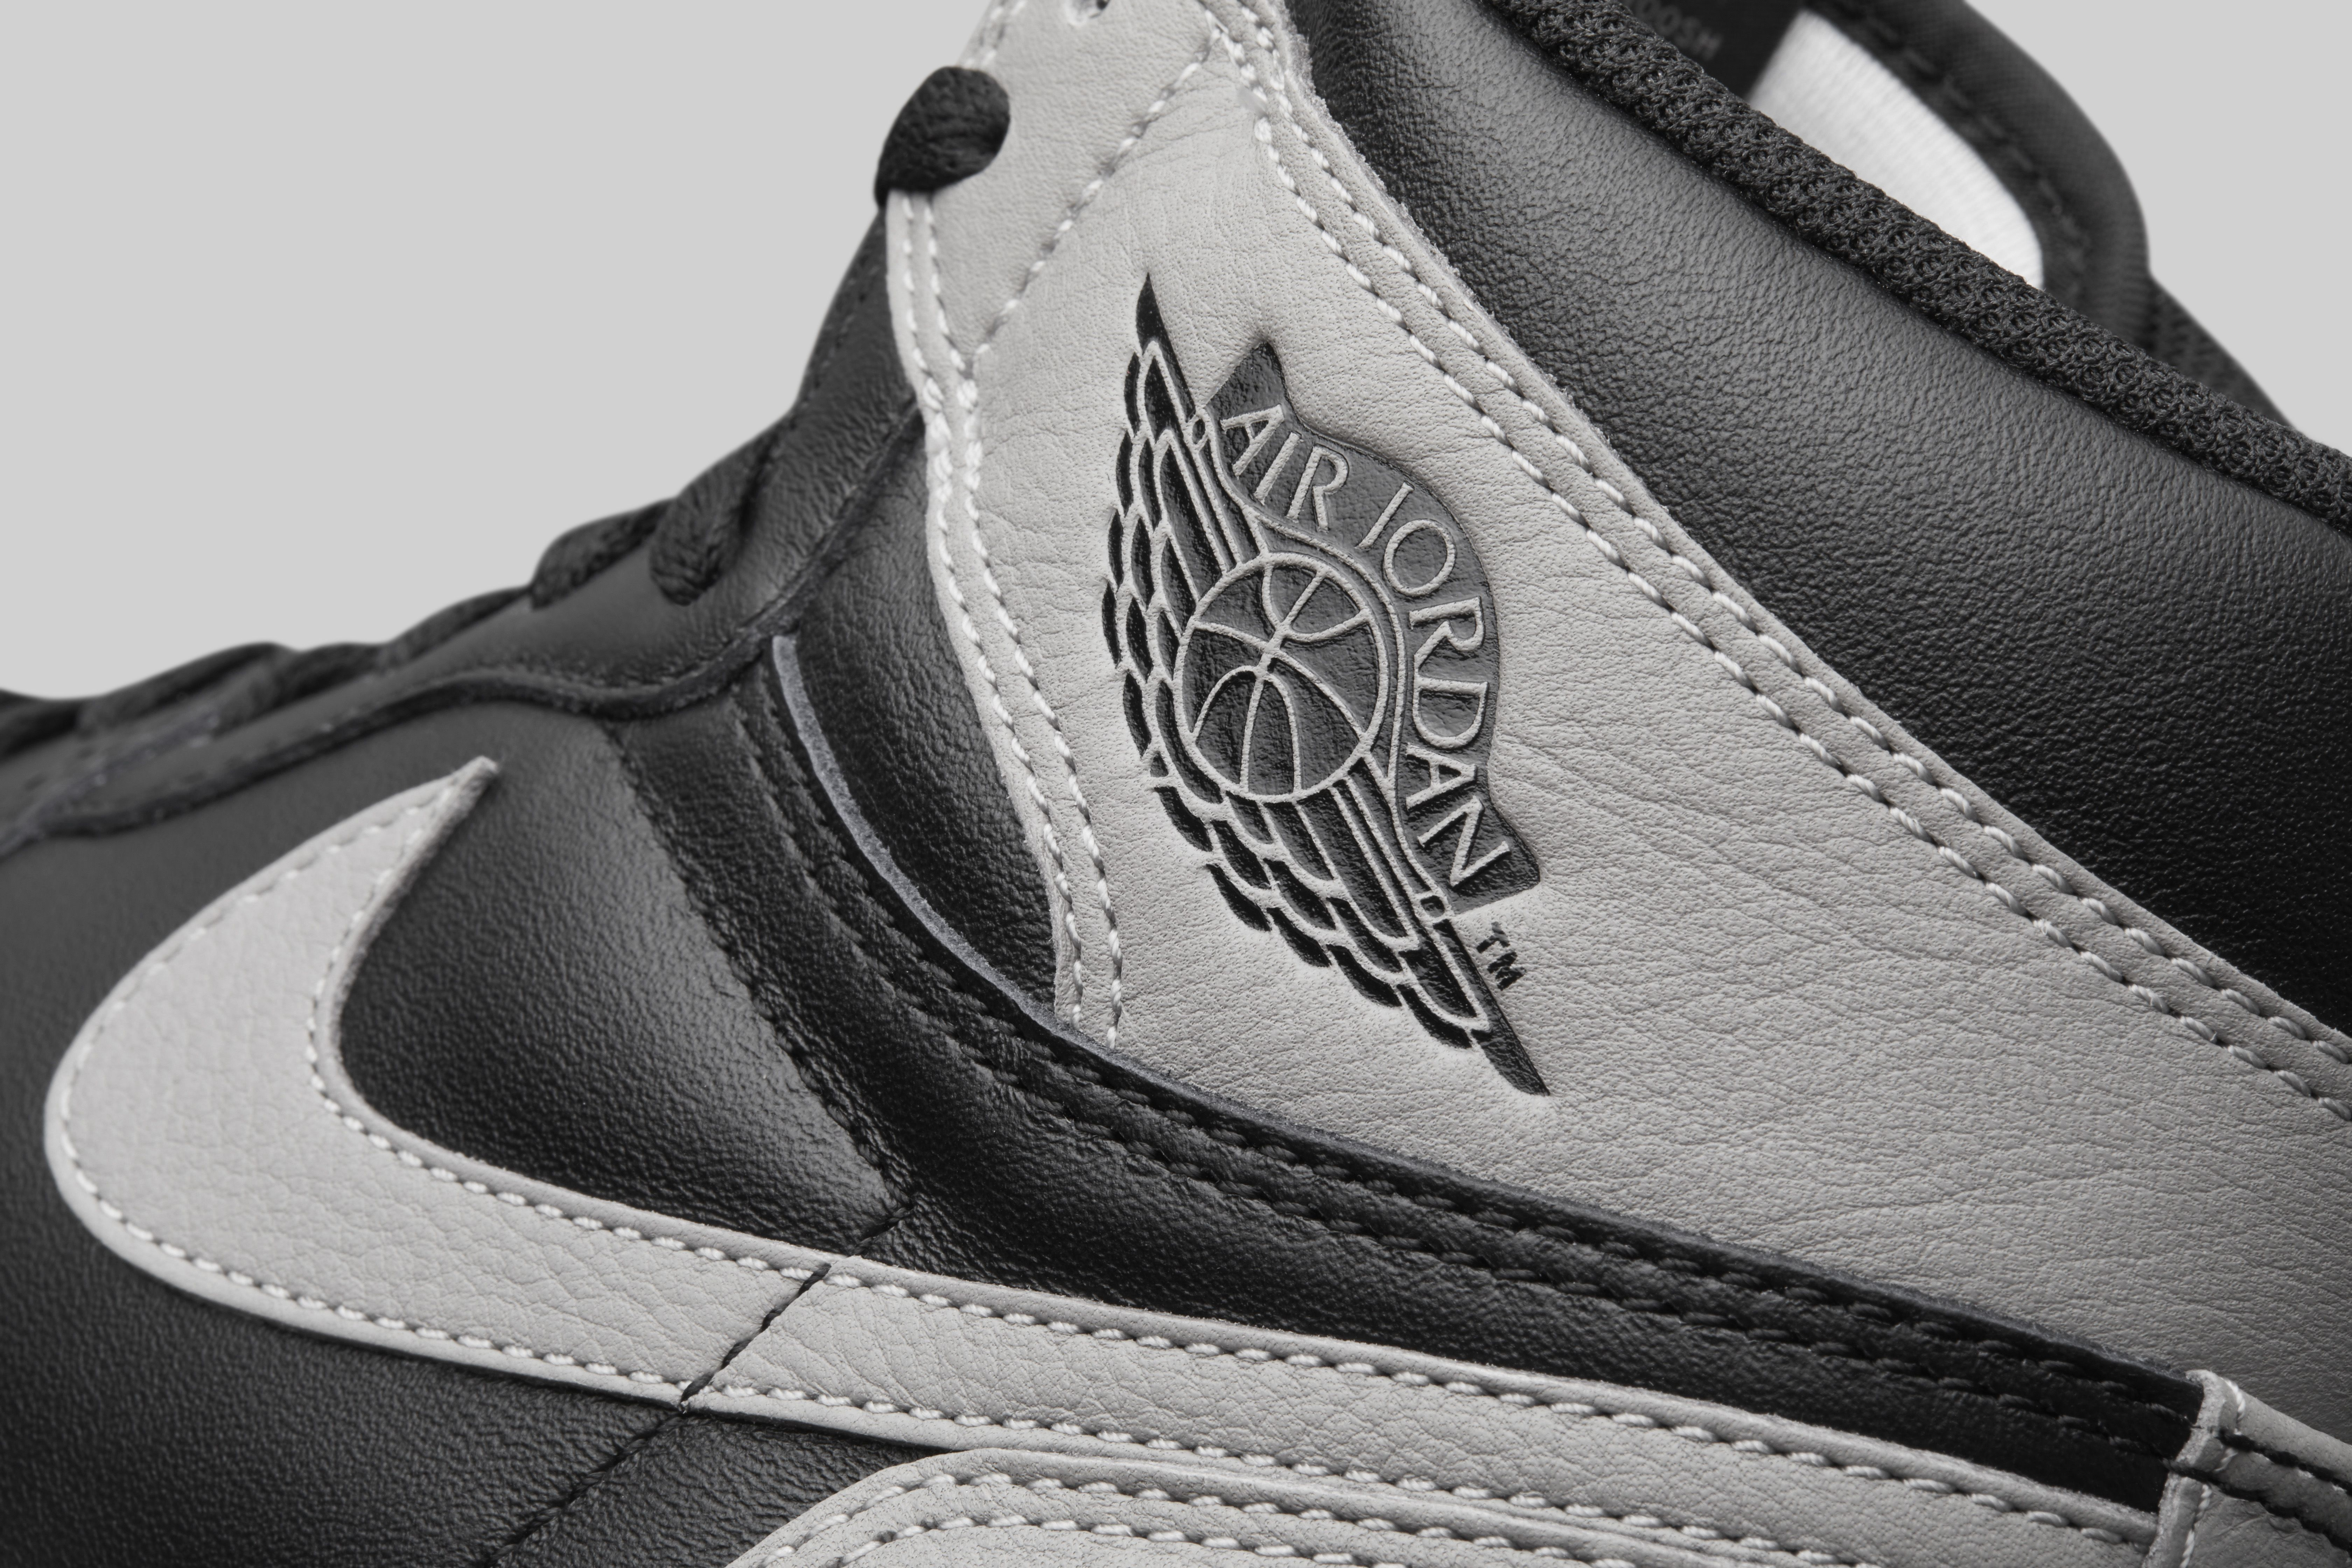 8e4e69022423d4 We ve seen several original Air Jordan 1 colorways get retroed in the past  few years. Check out photos and more info at Da Jay Way.